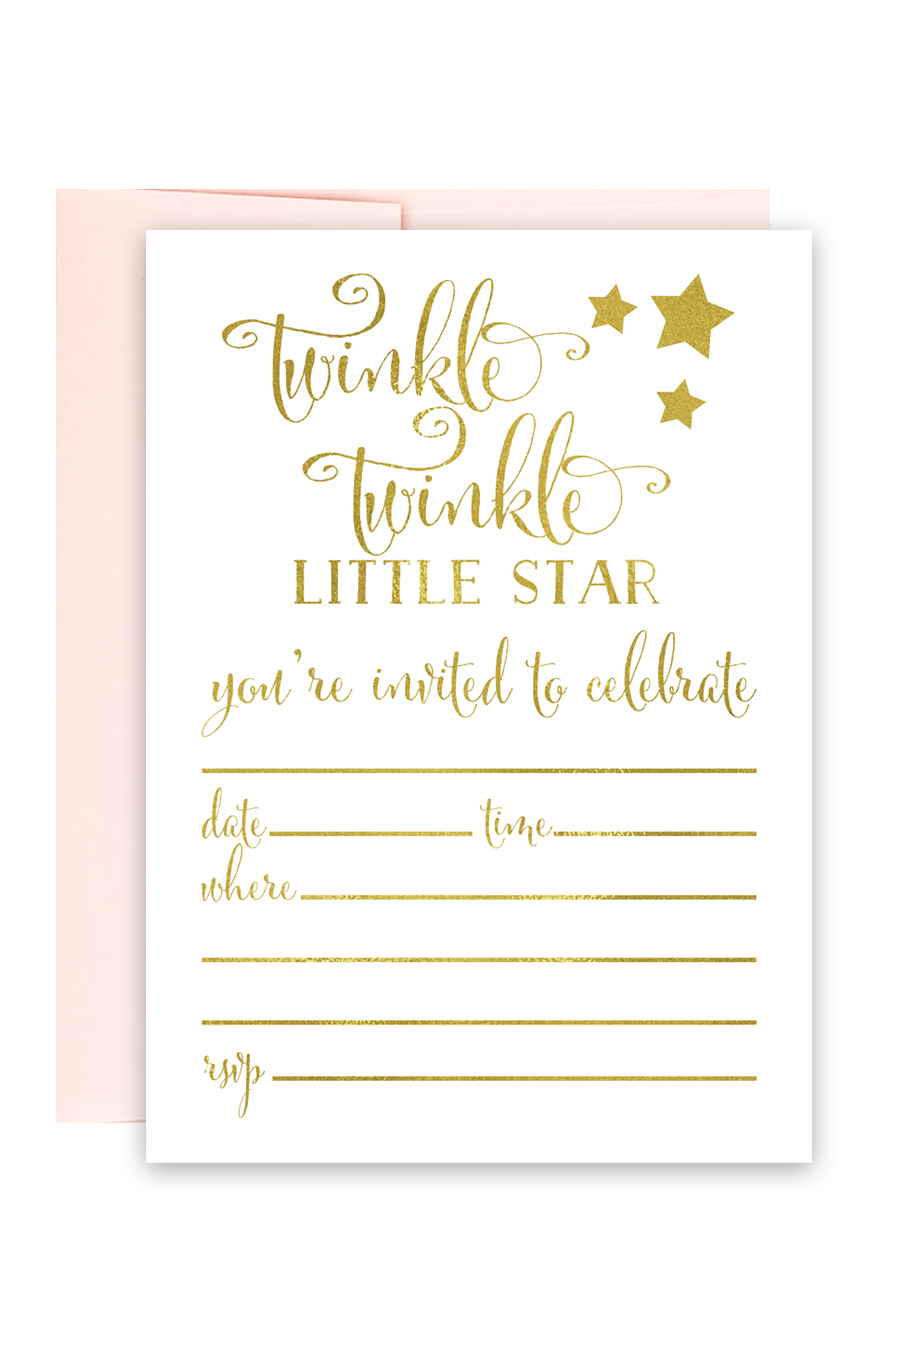 image regarding Free Printable Twinkle Twinkle Little Star Baby Shower Invitations titled Twinkle Twinkle Small Star Foil Invites